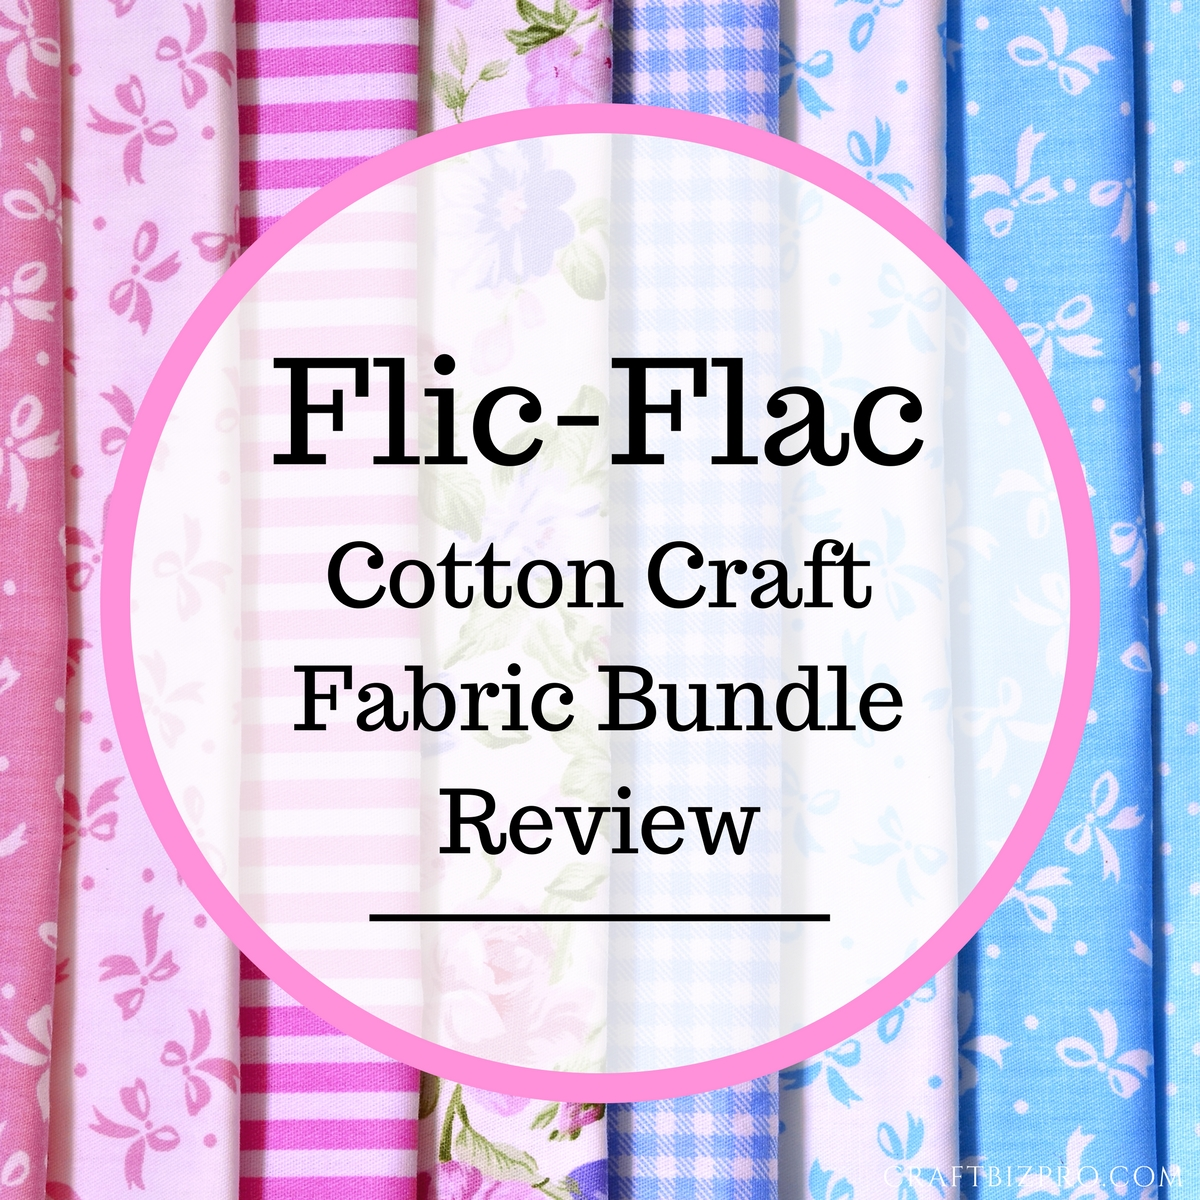 Flic-Flac Cotton Craft Fabric Bundle Review